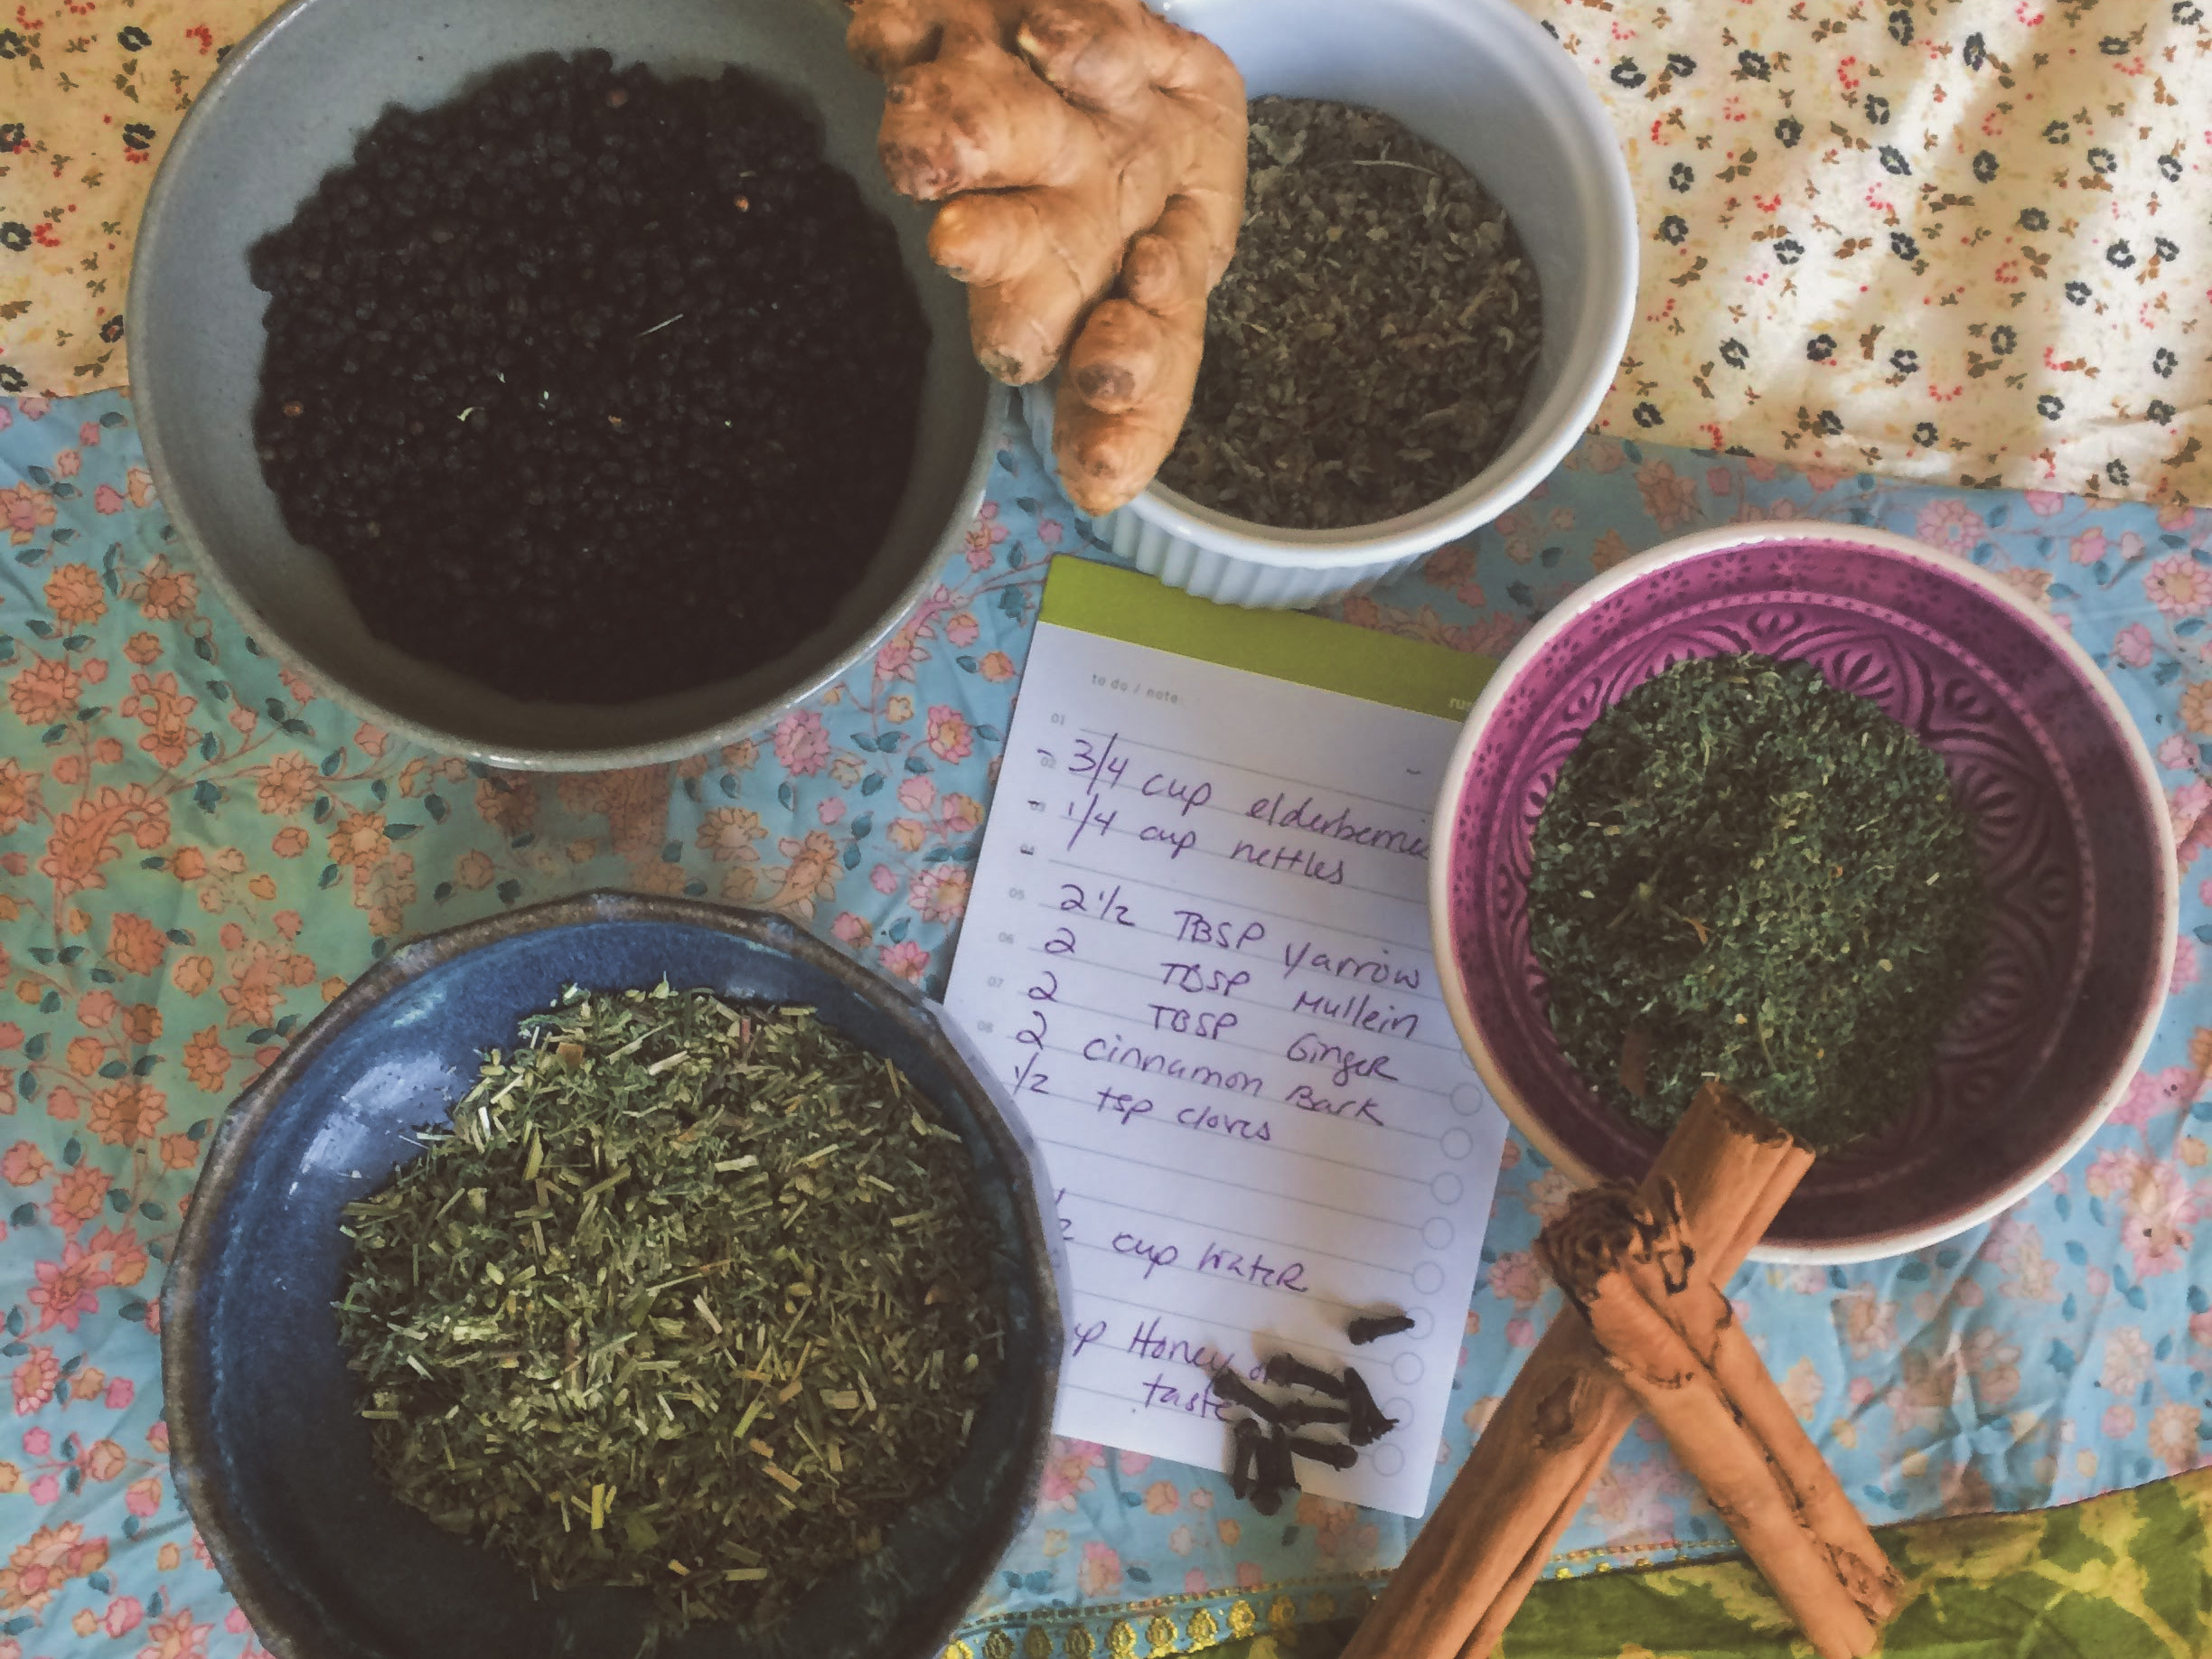 ingredients for herbal elderberry syrup